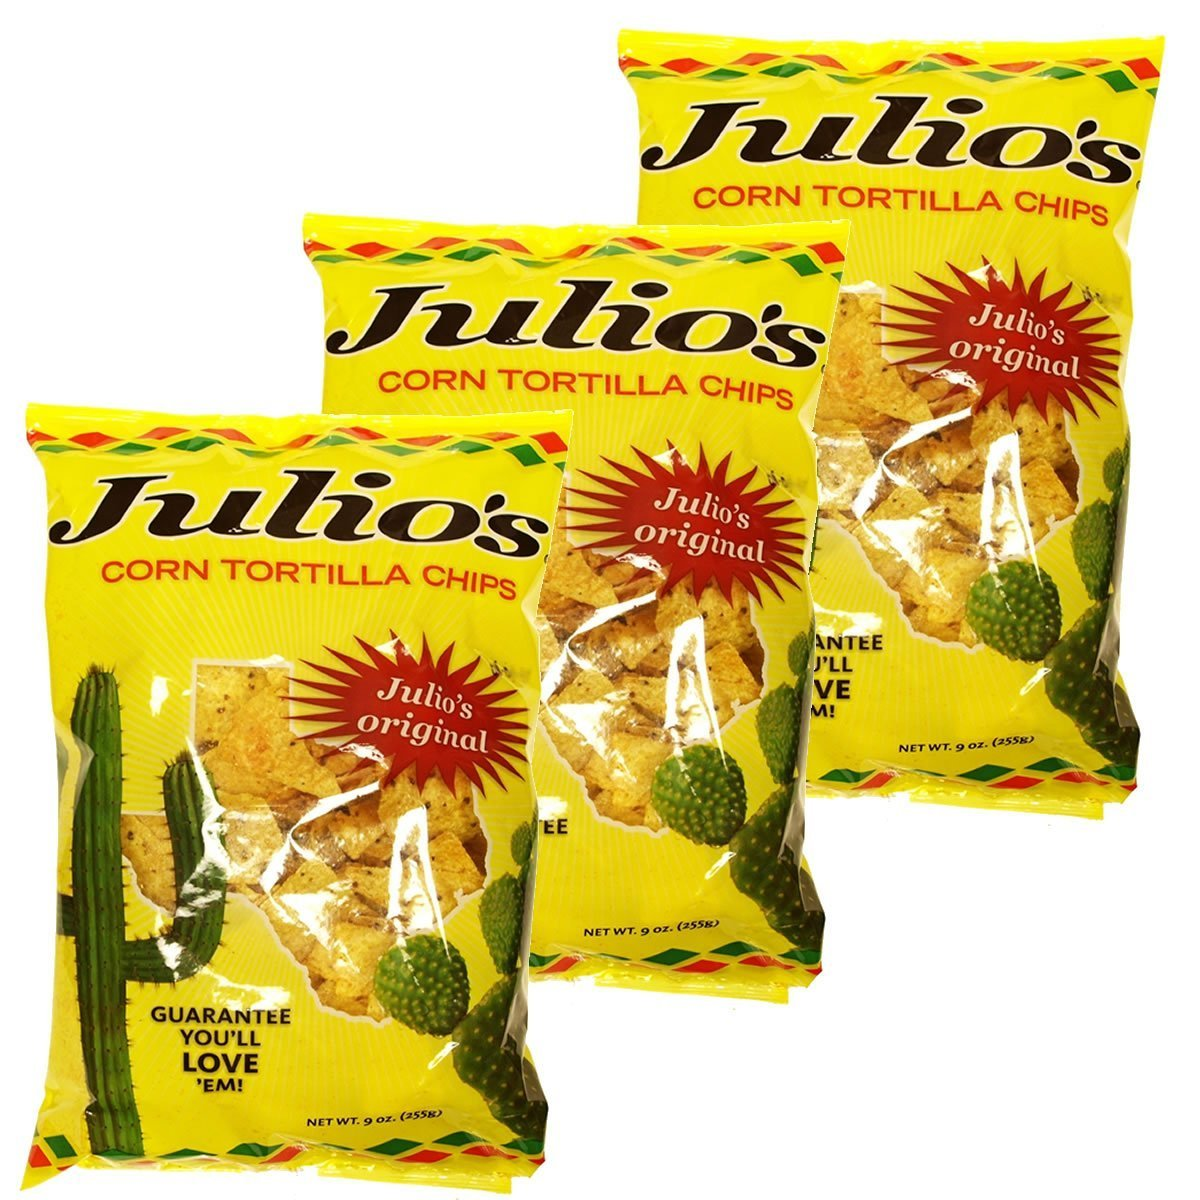 Julio's Corn Tortilla Chips - Three 9 oz Bags - Chips Covered In Julio's Seasoning - Perfect For Nachos - Great Tex-Mex Taste